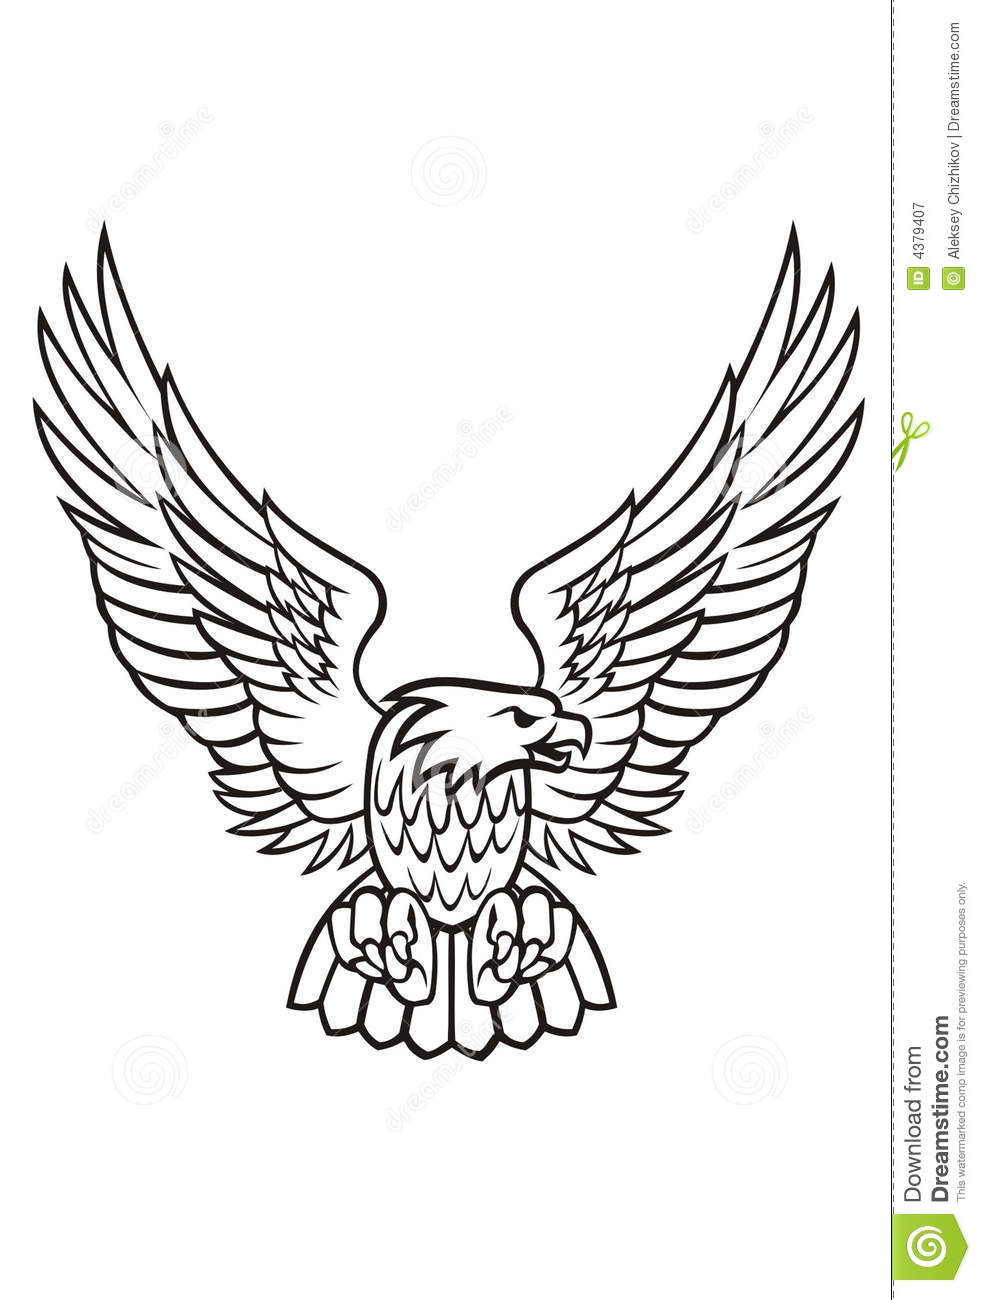 medium resolution of eagle clipart black and white 4